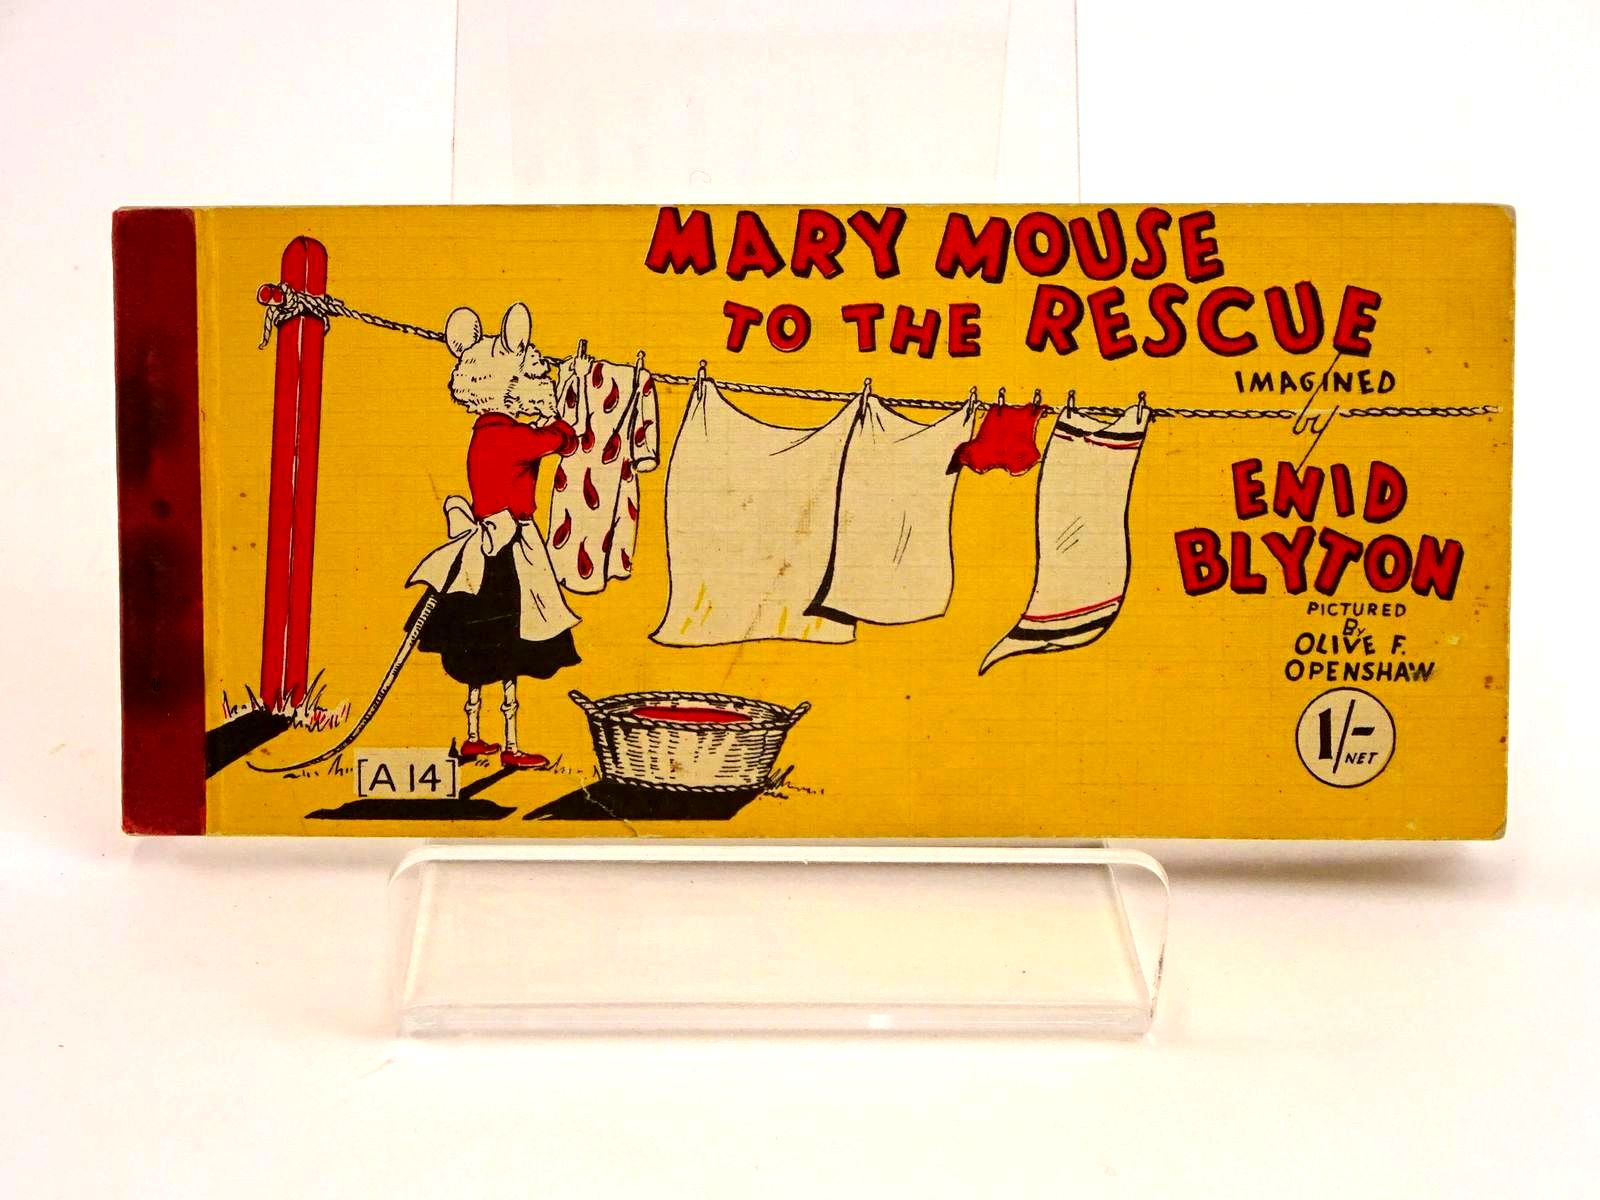 Photo of MARY MOUSE TO THE RESCUE written by Blyton, Enid illustrated by Openshaw, Olive F. published by Brockhampton Press Ltd. (STOCK CODE: 1318190)  for sale by Stella & Rose's Books